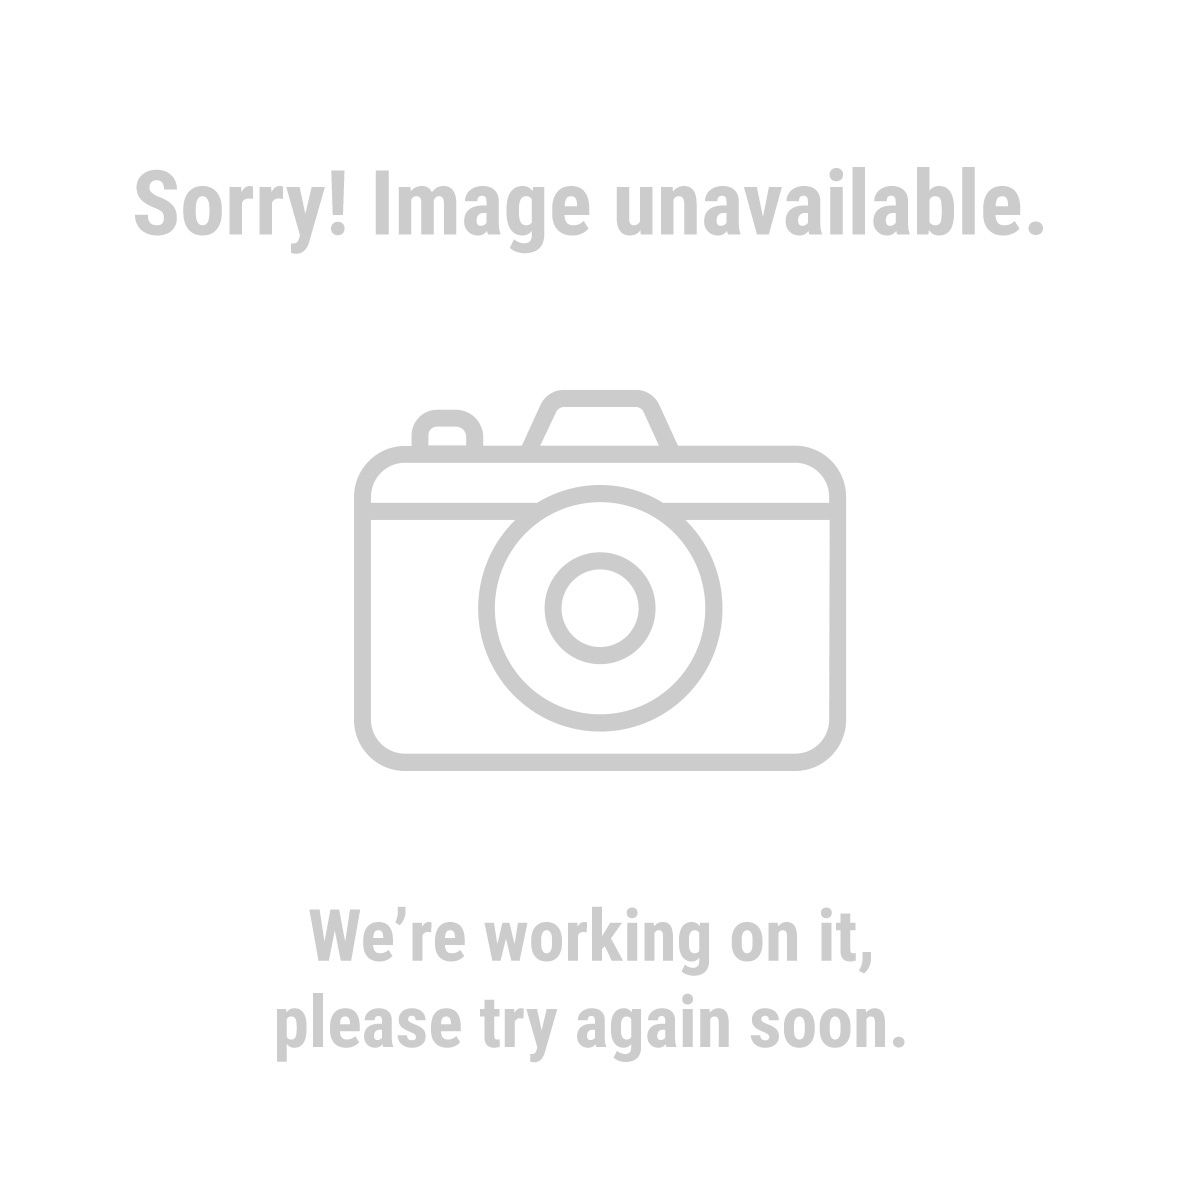 Haul-Master 60658 3/8 in. x 14 ft. Grade 43 Towing Chain